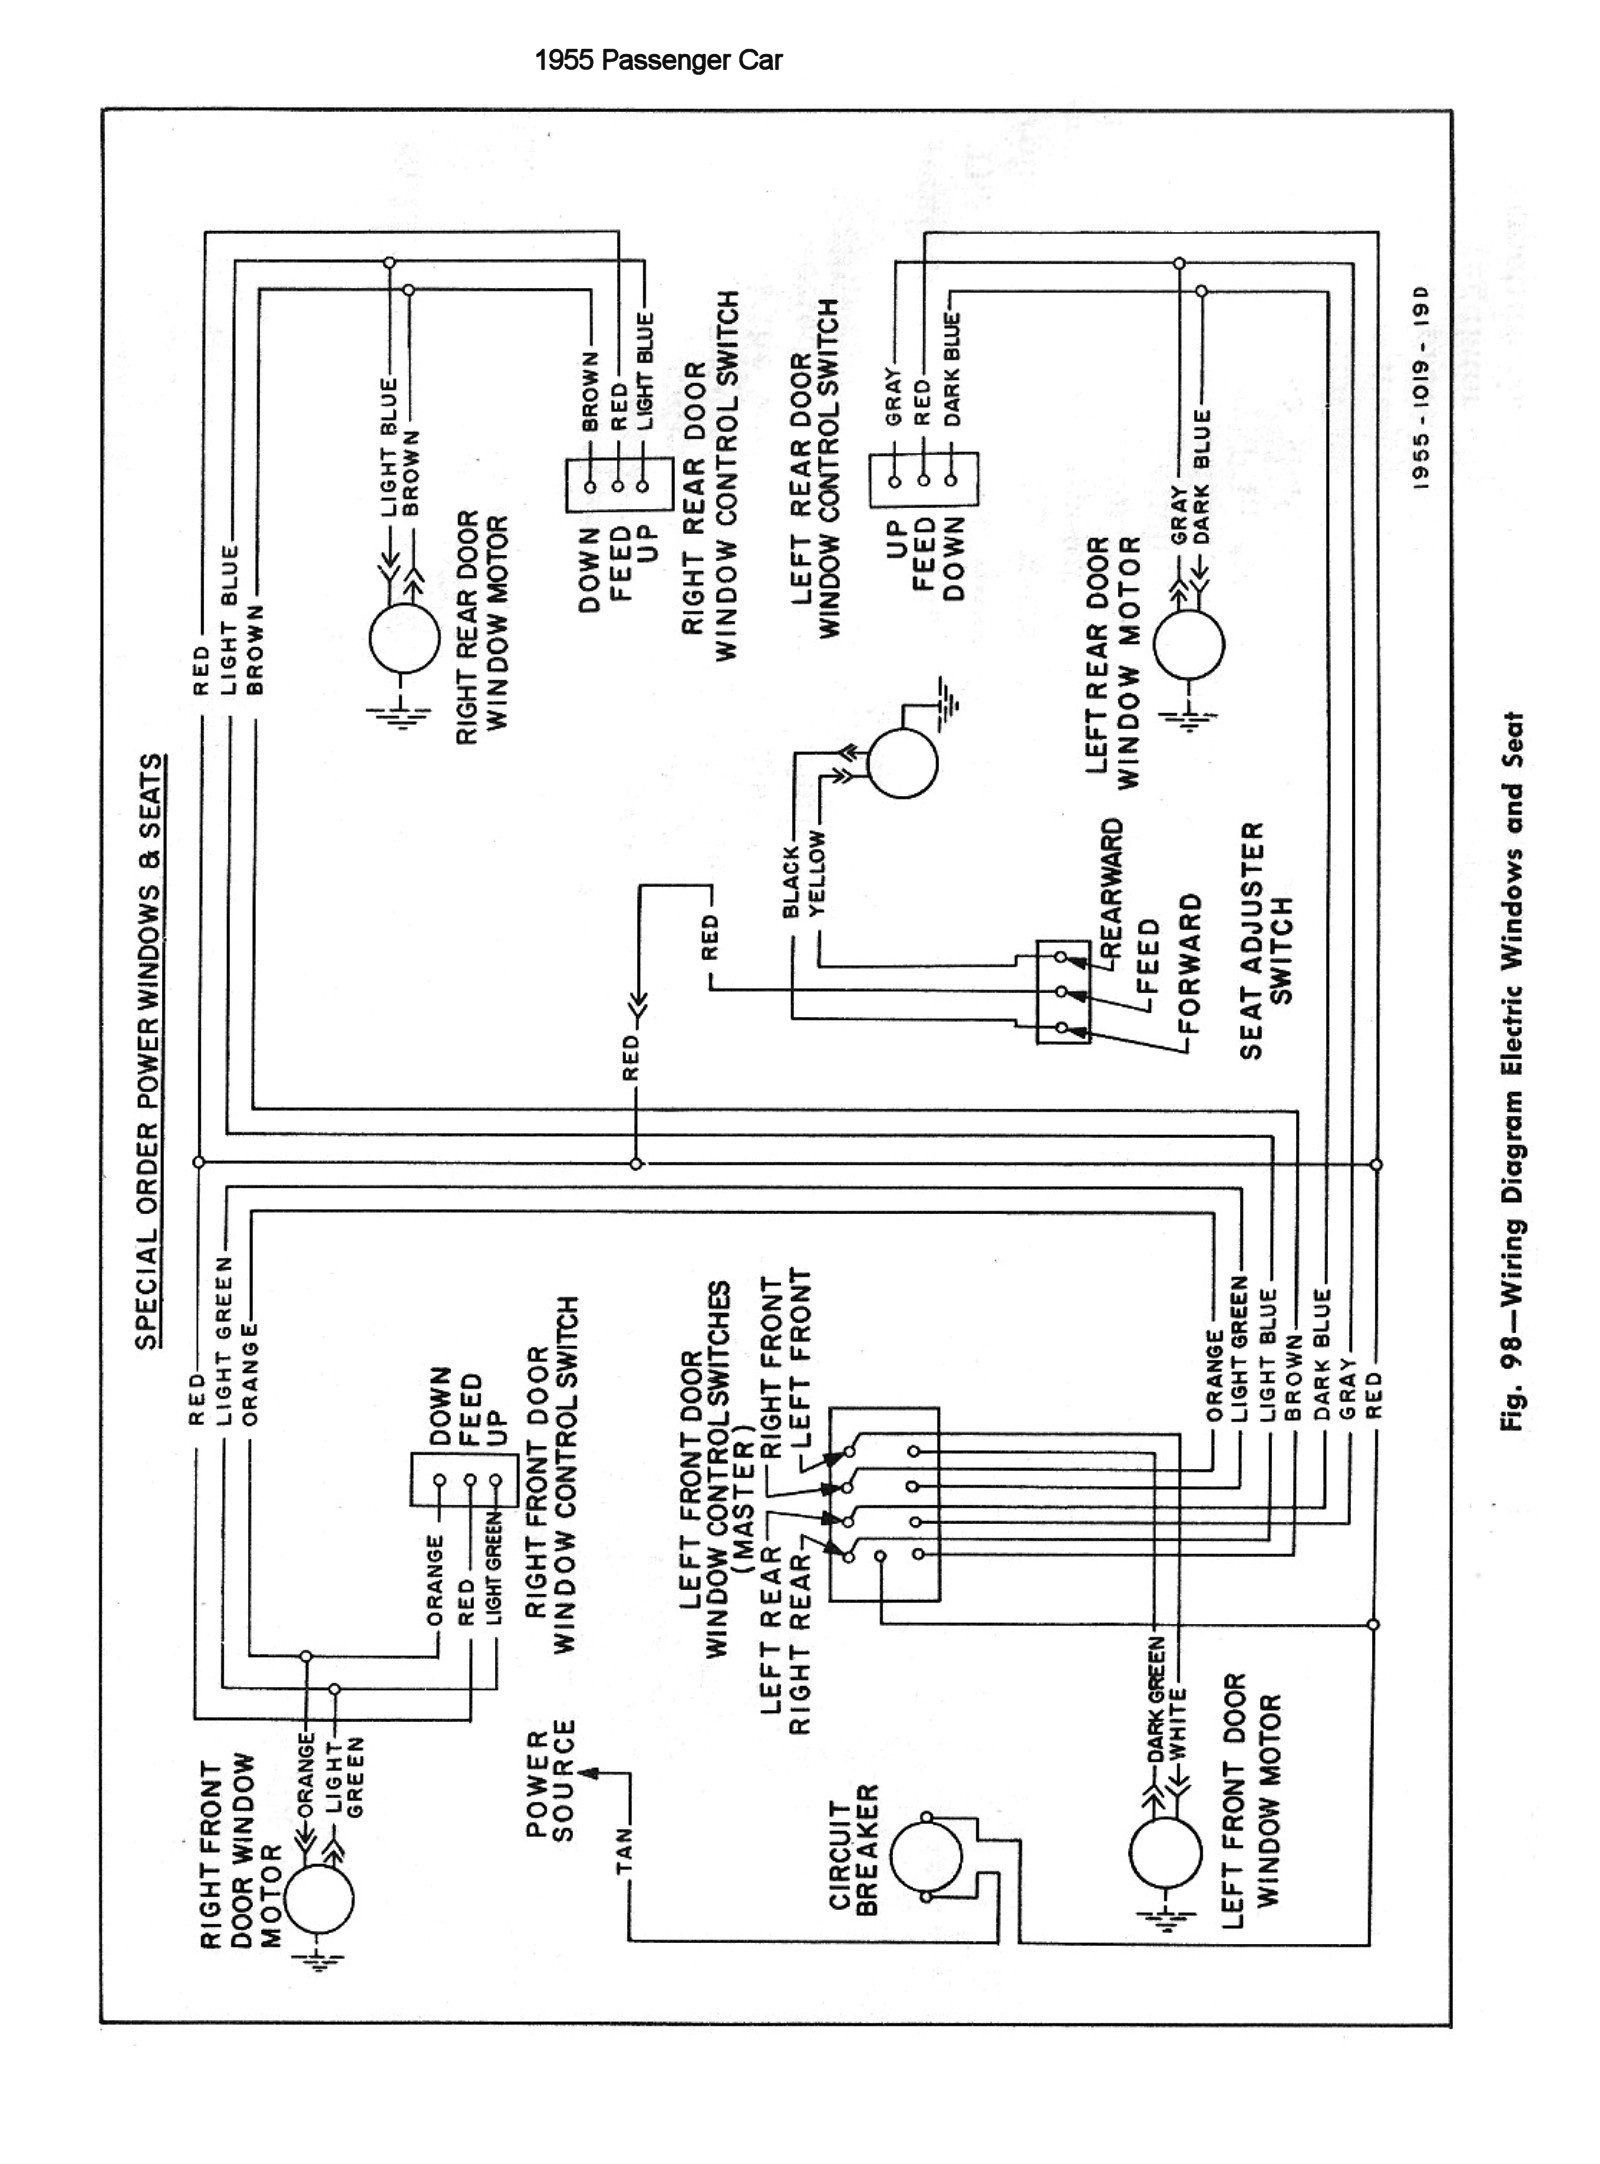 Simple Wire Diagram For 1955 Dune Buggy Circuit Wiring And Turn Signal Chevy Wiringdiagram Org Rh Pinterest Com Brake System